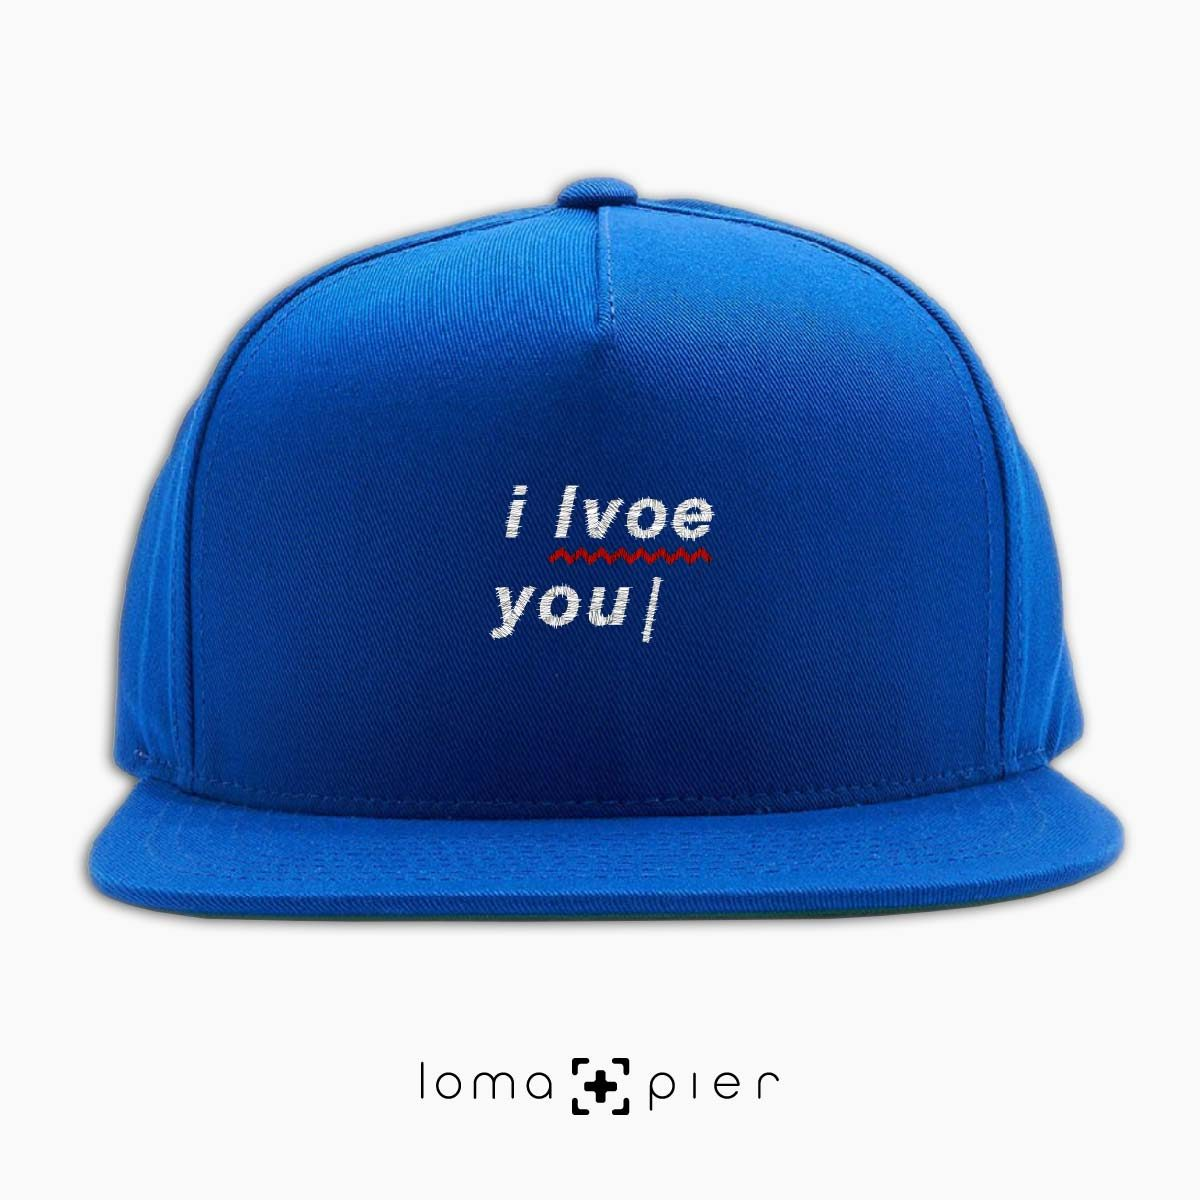 I LVOE YOU typography embroidered on a royal blue classic snapback hat with white thread by loma+pier hat store